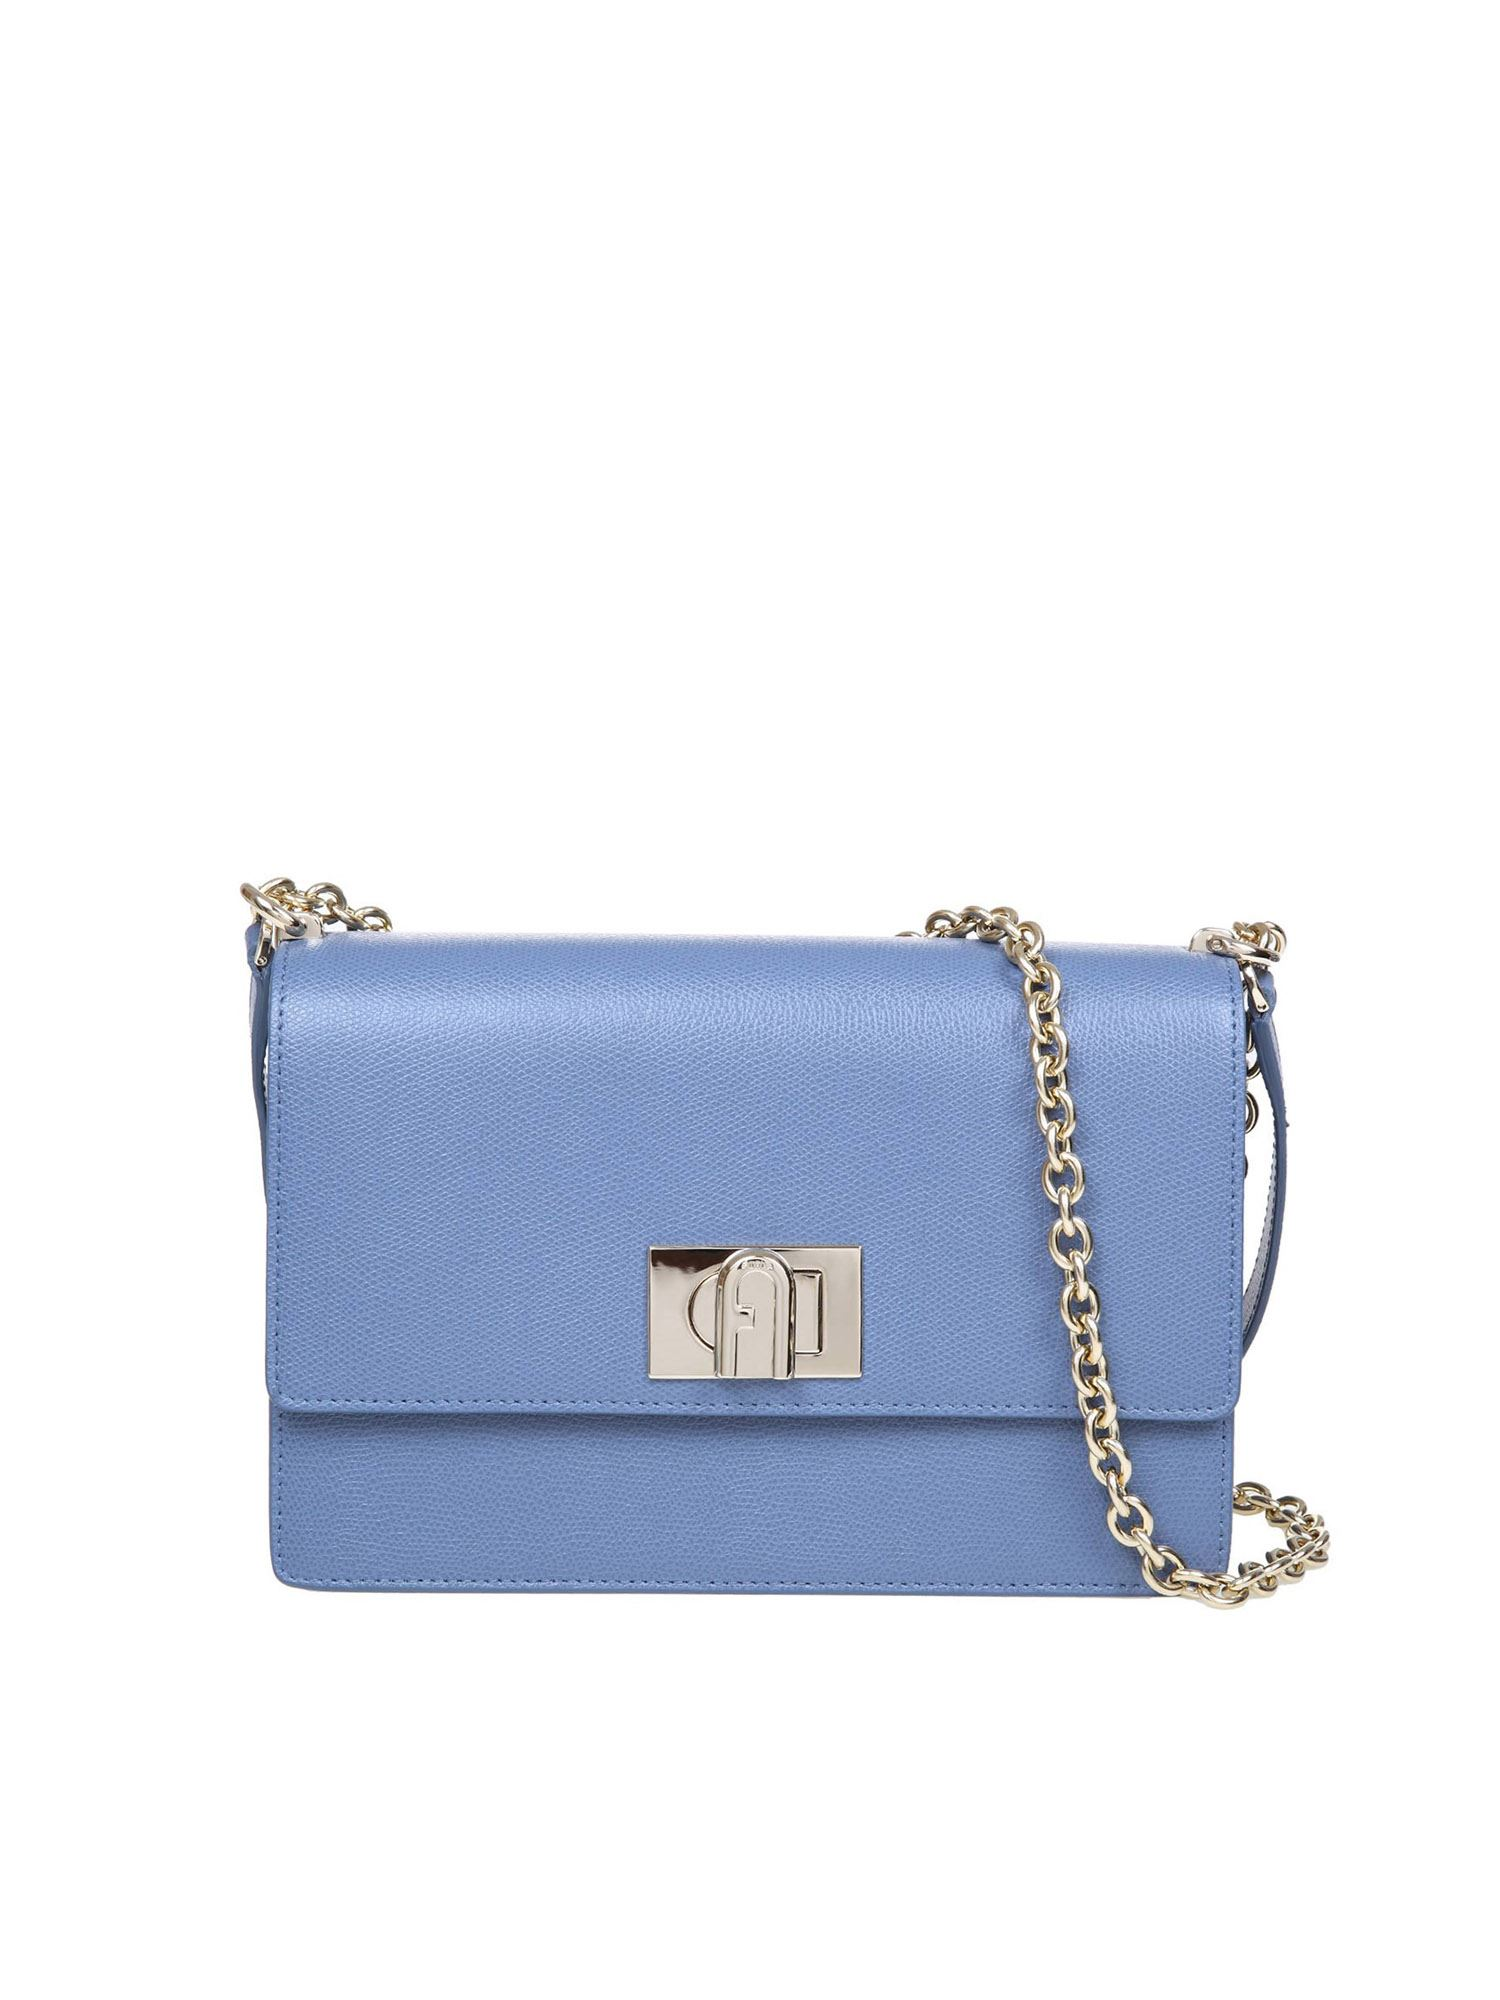 Furla 1927 MINI CROSSBODY BAG IN DENIM BLUE